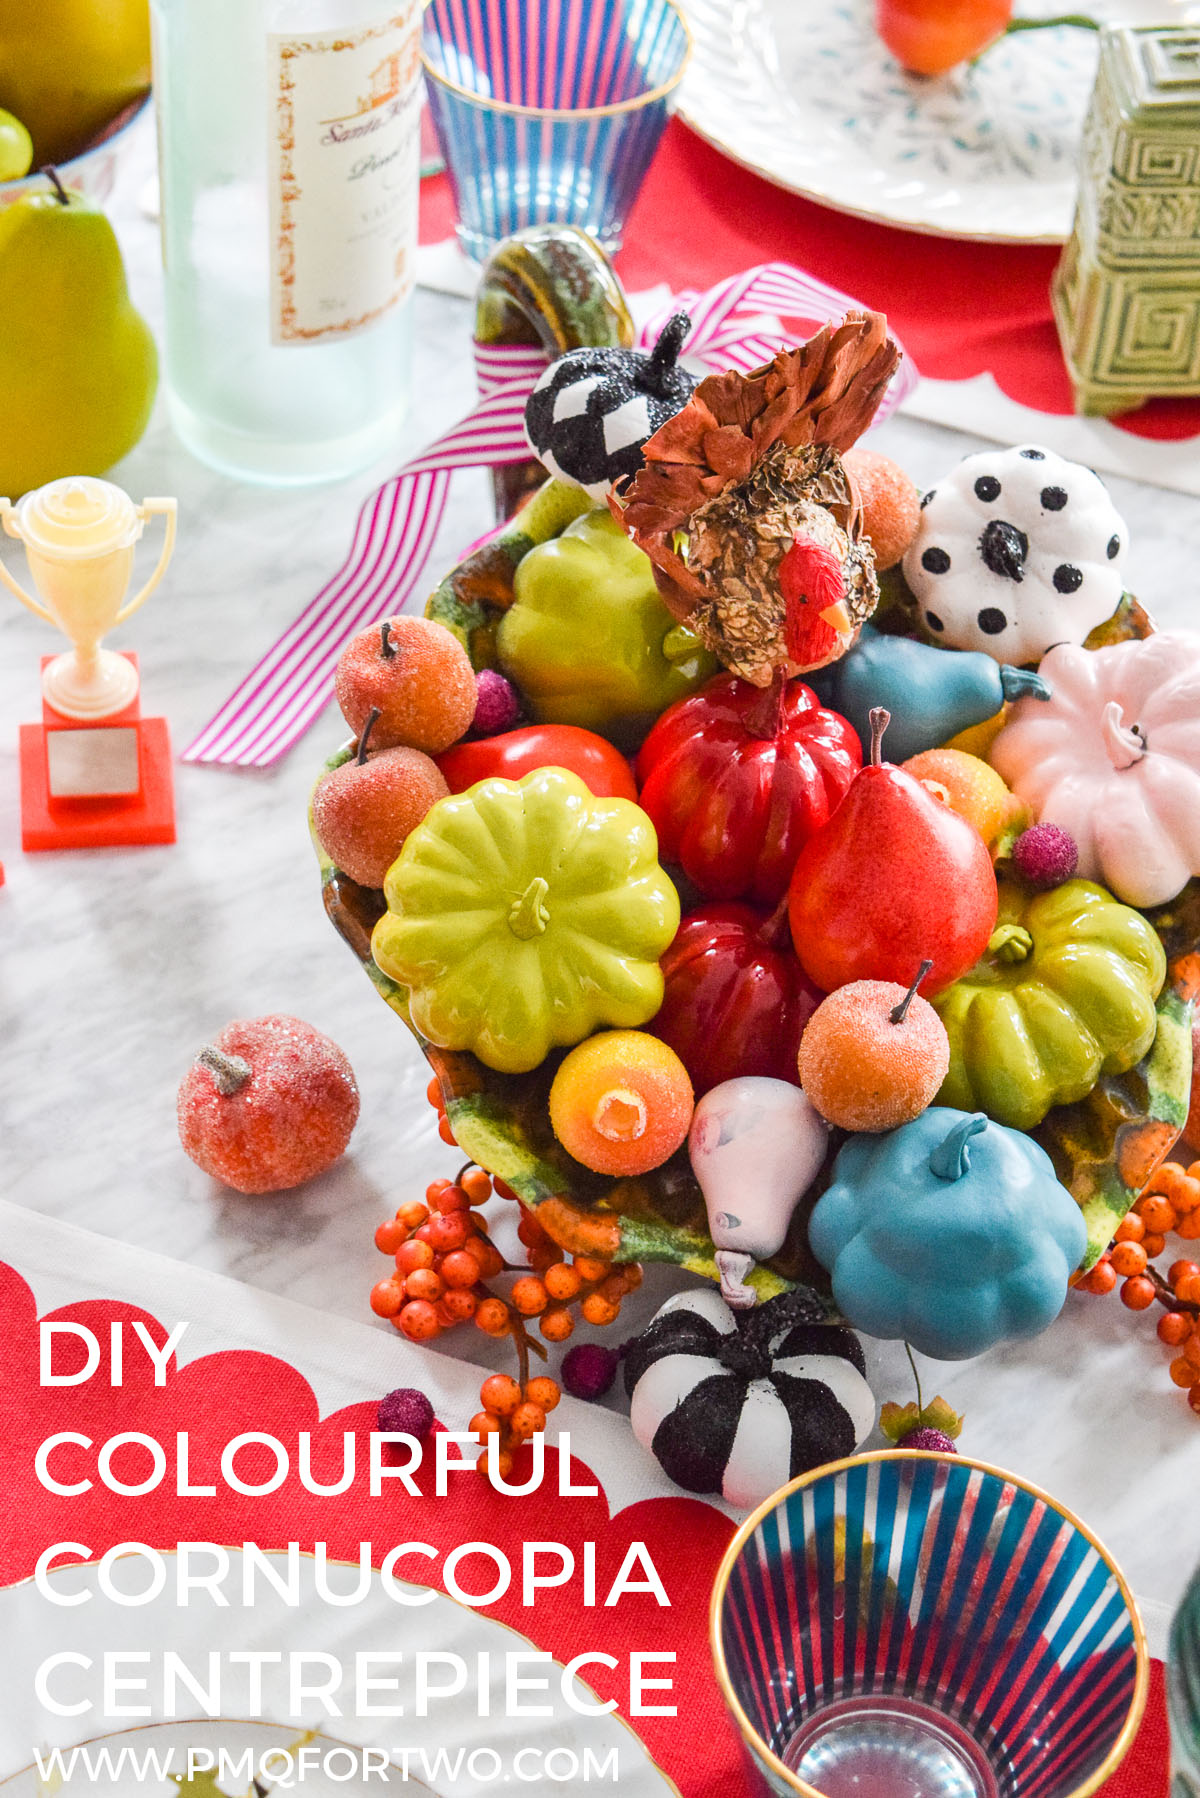 pinterest cover image of a colourful cornucopia at the center of a table